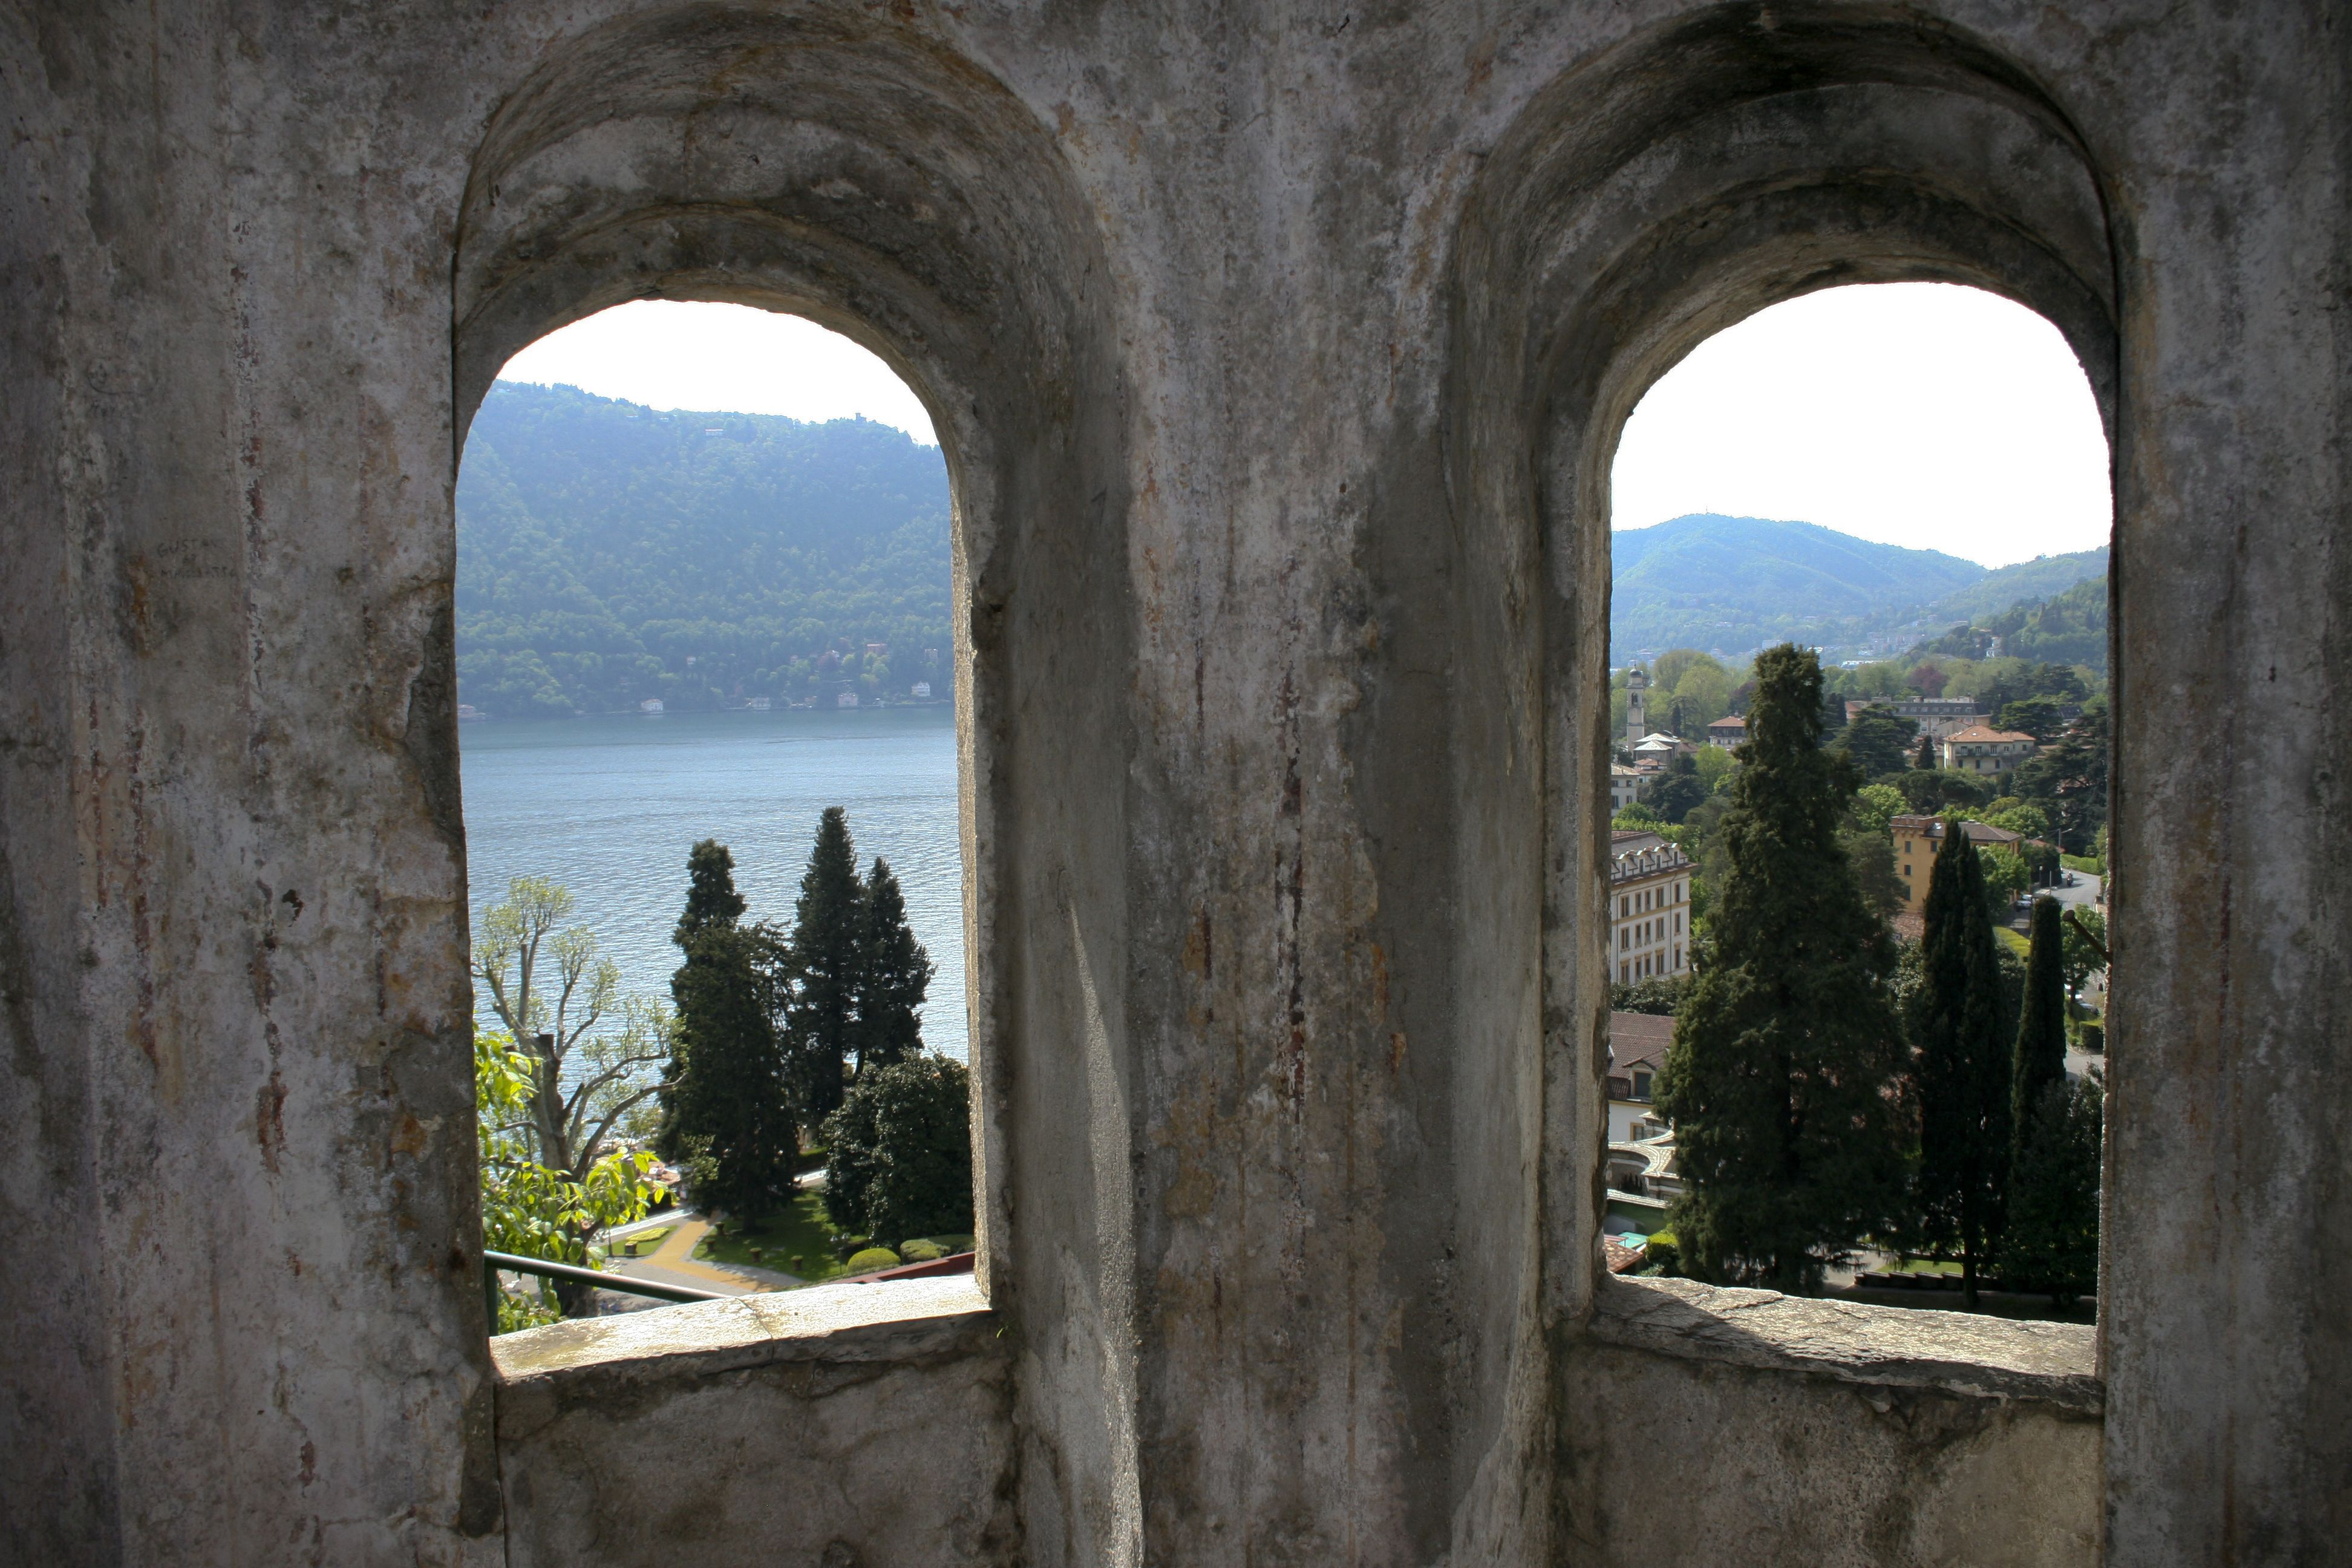 View from Inside the ruins overlooking Lake Como. www.joegrillomusic.com